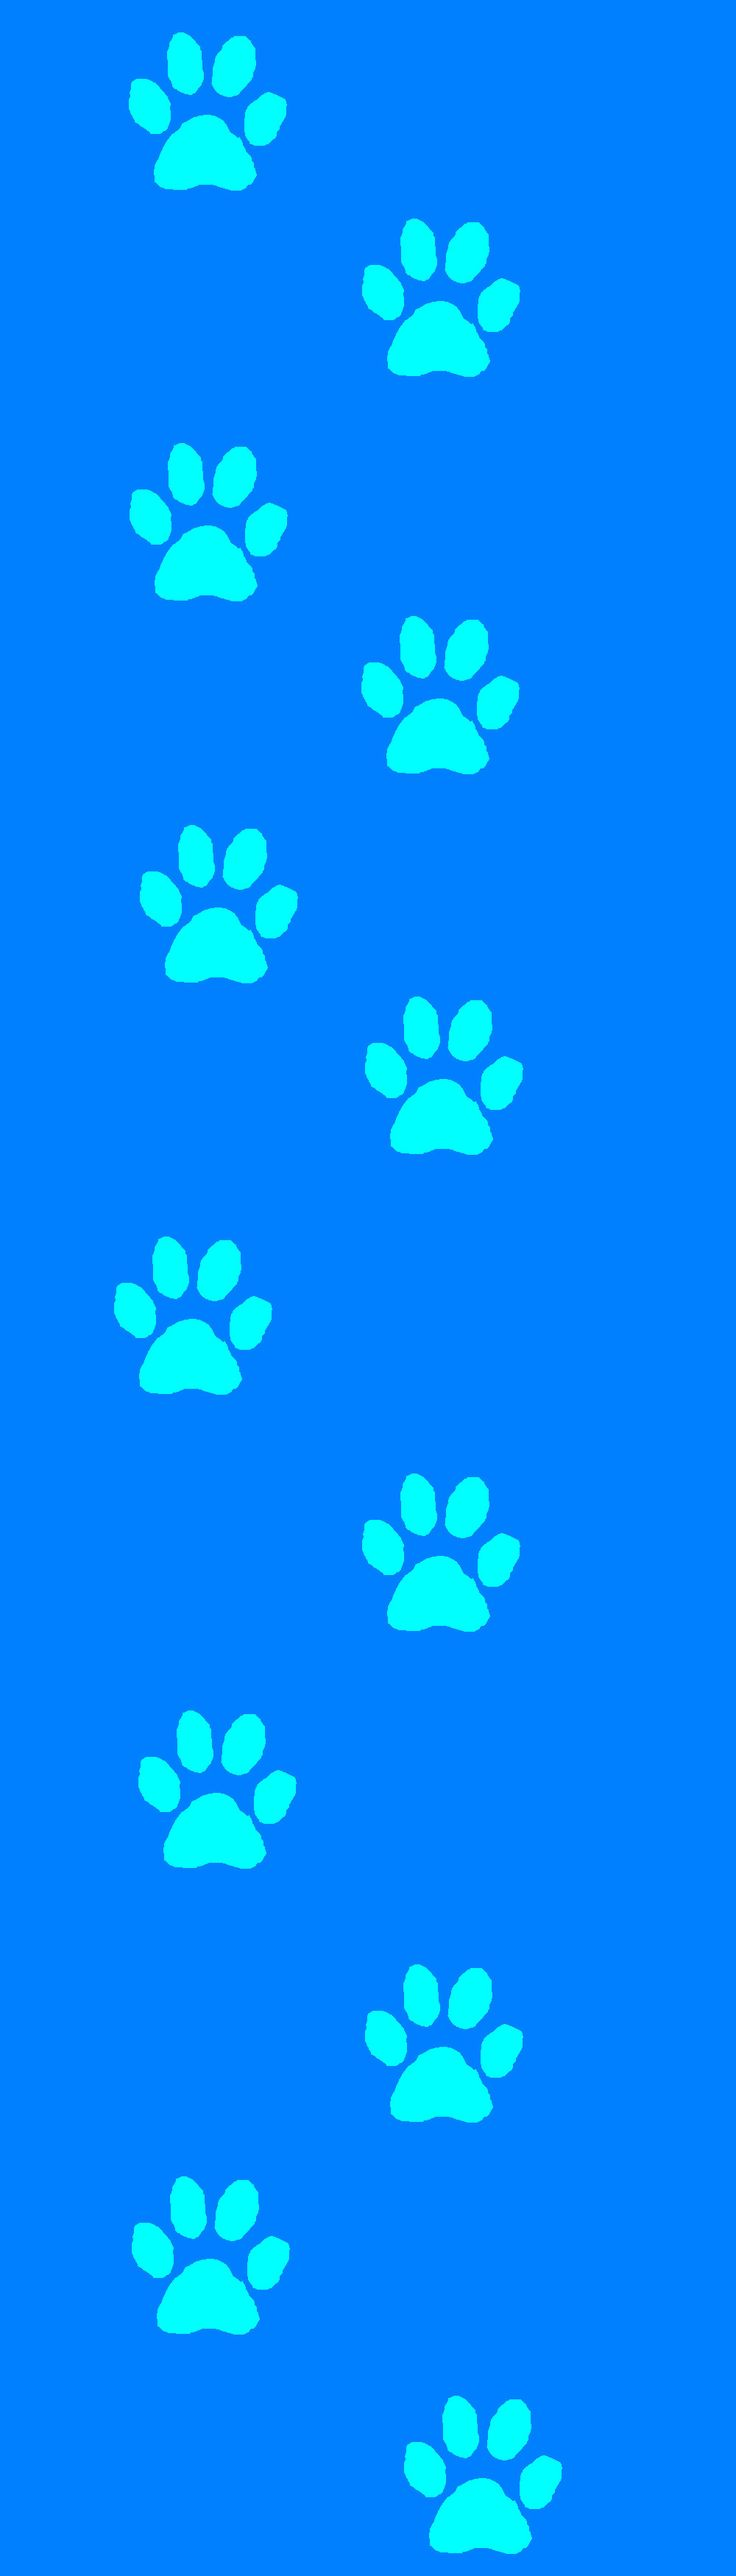 Dog Paw Print Background - Bing images | Paw Prints ...